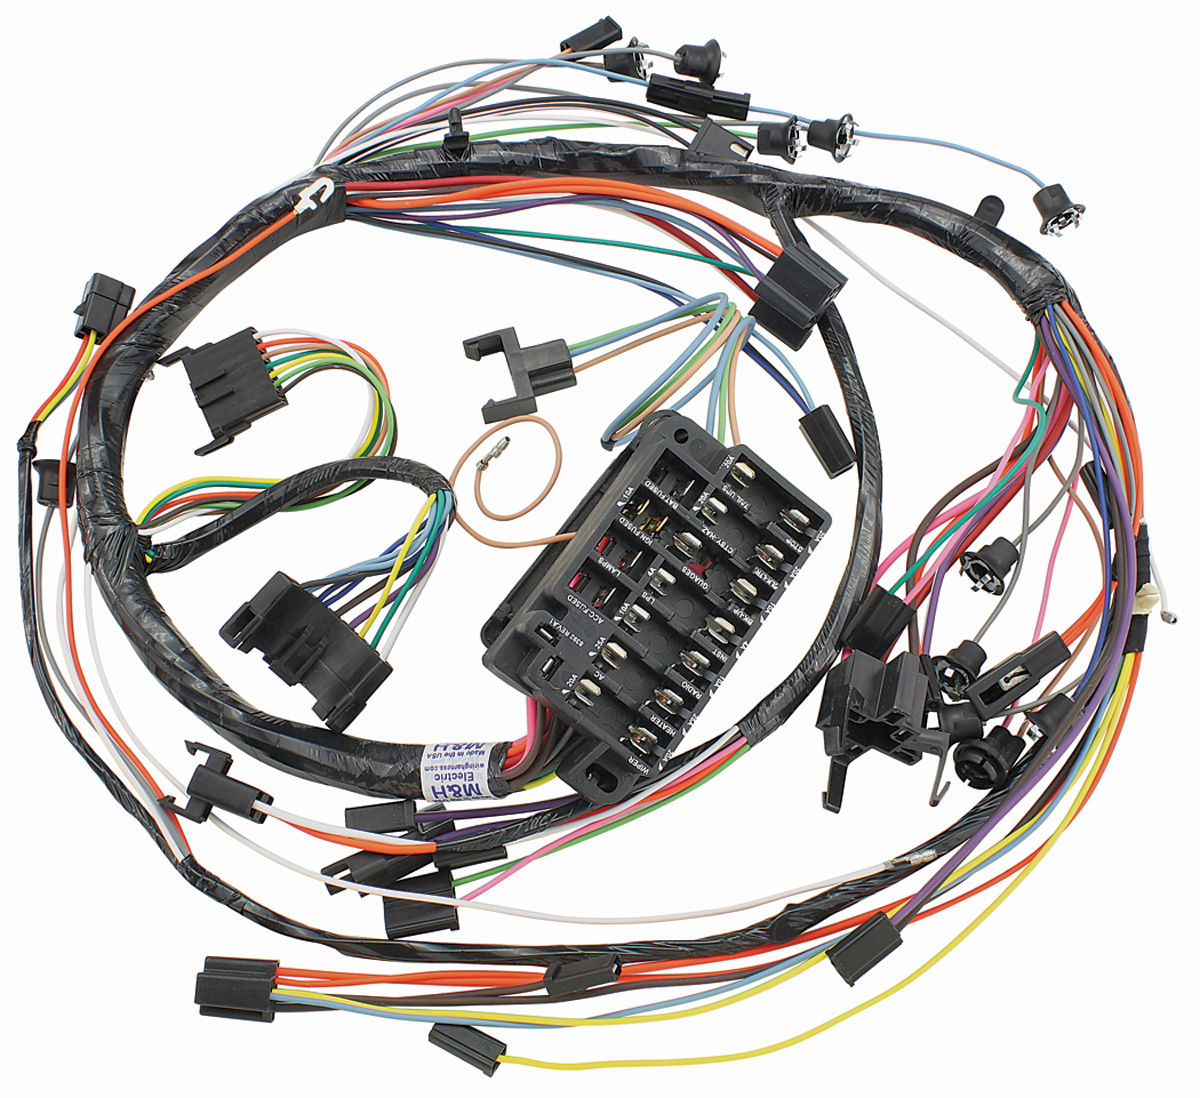 1967 Impala Dash Panel Wiring Explore Diagram On The Net Camaro Under Chevelle Instrument Harness W Gauges By M Ss